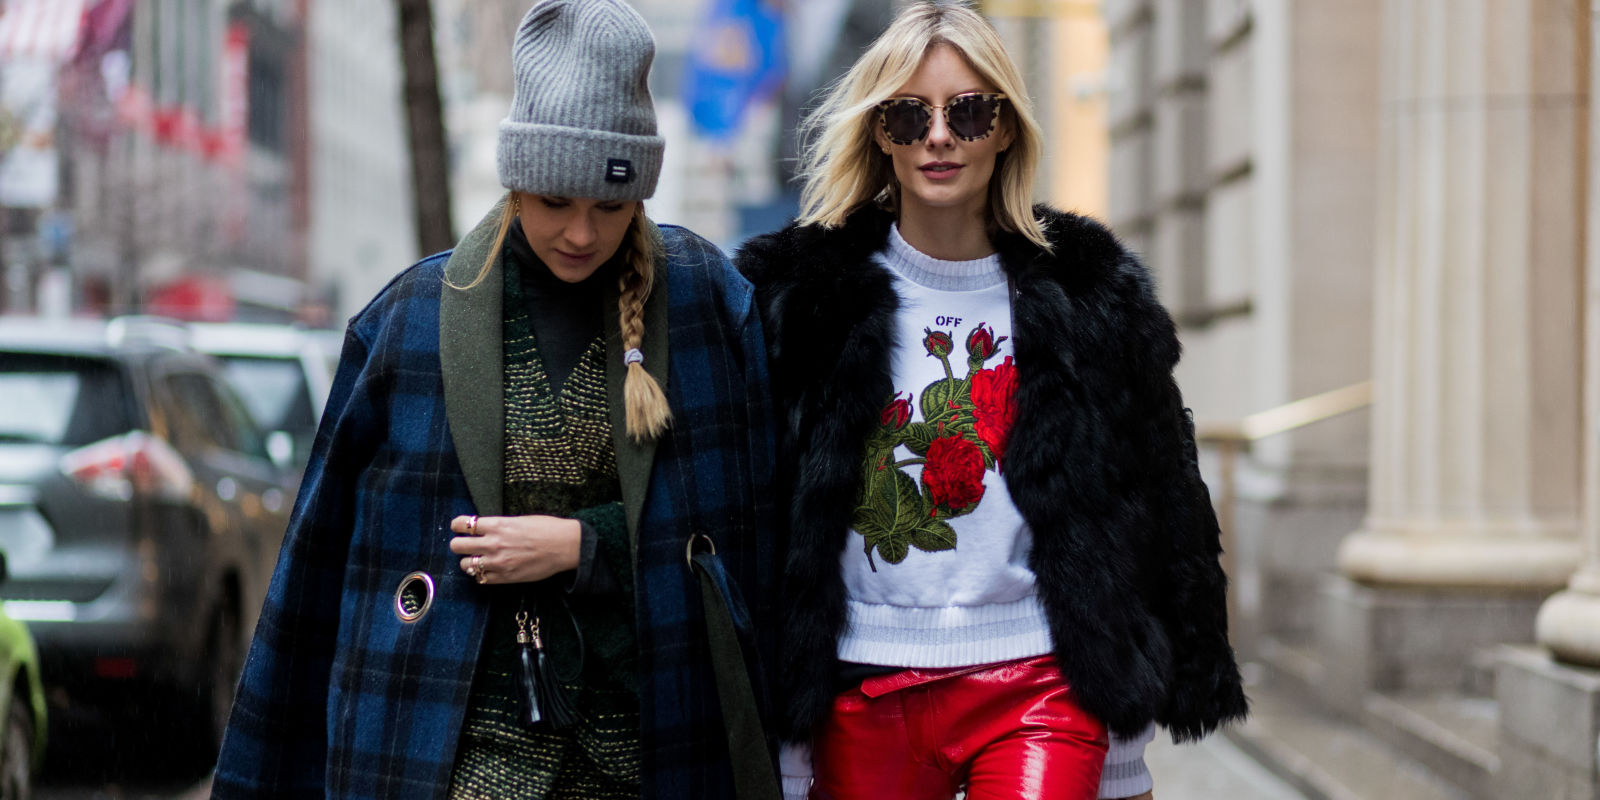 6 Unexpected Ways To Layer Your Outfit